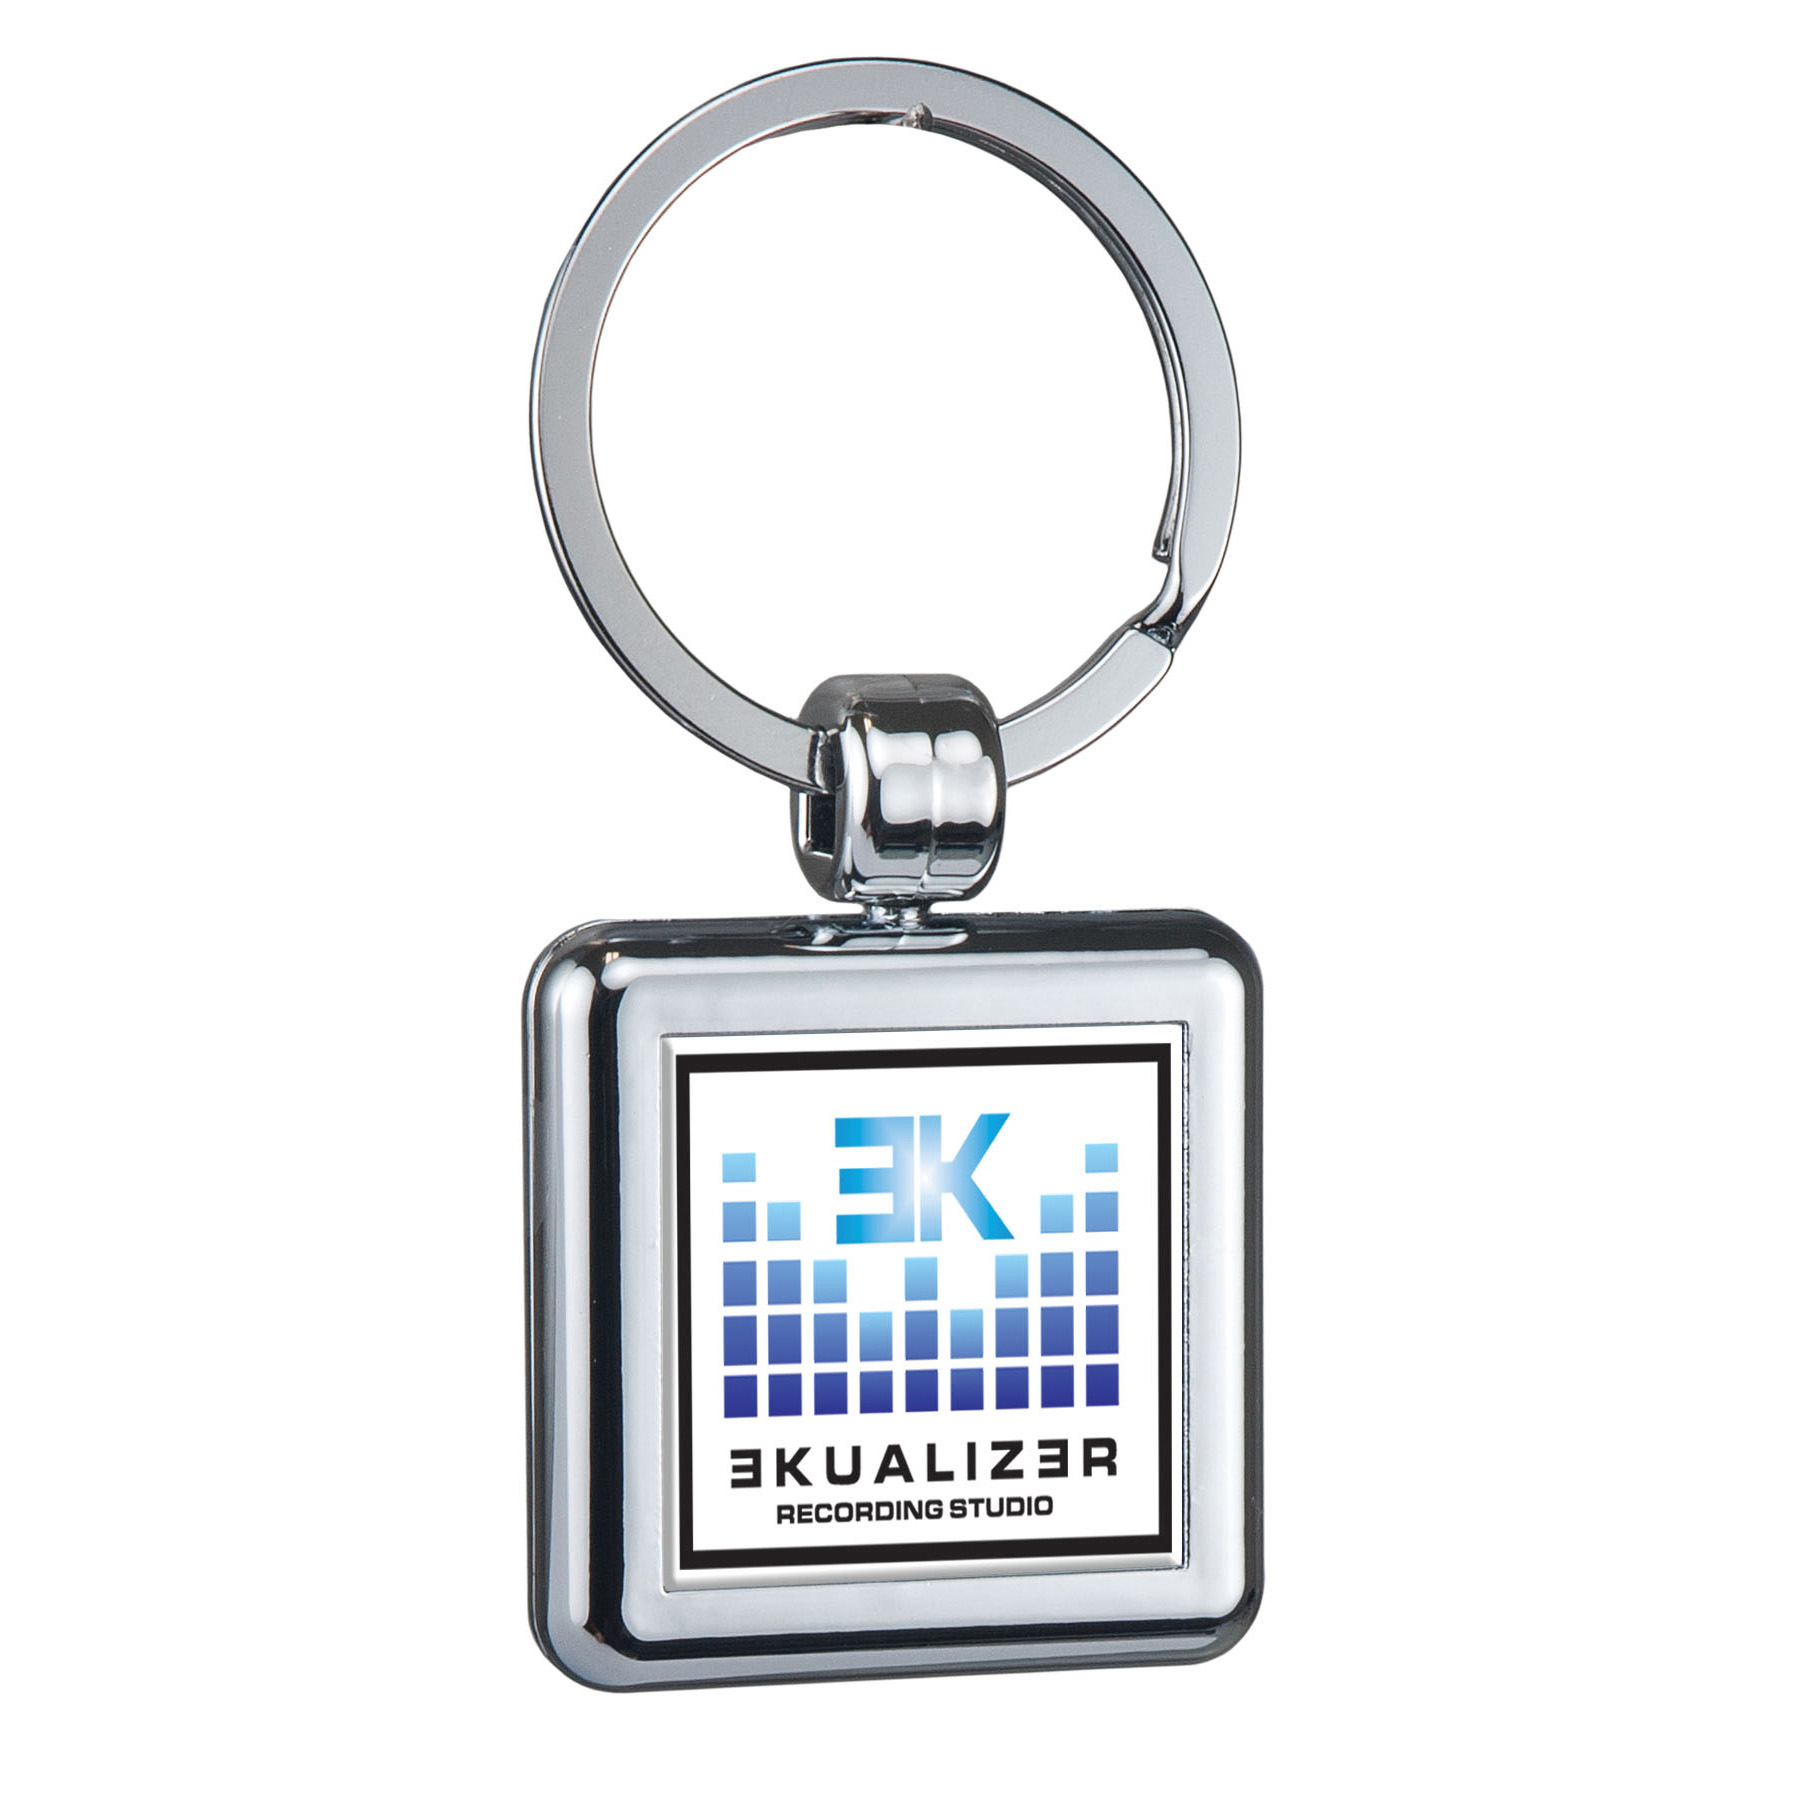 Two Sided Budget Chrome Plated Plastic Domed Key Tag Square, 113-K, Full Colour Imprint